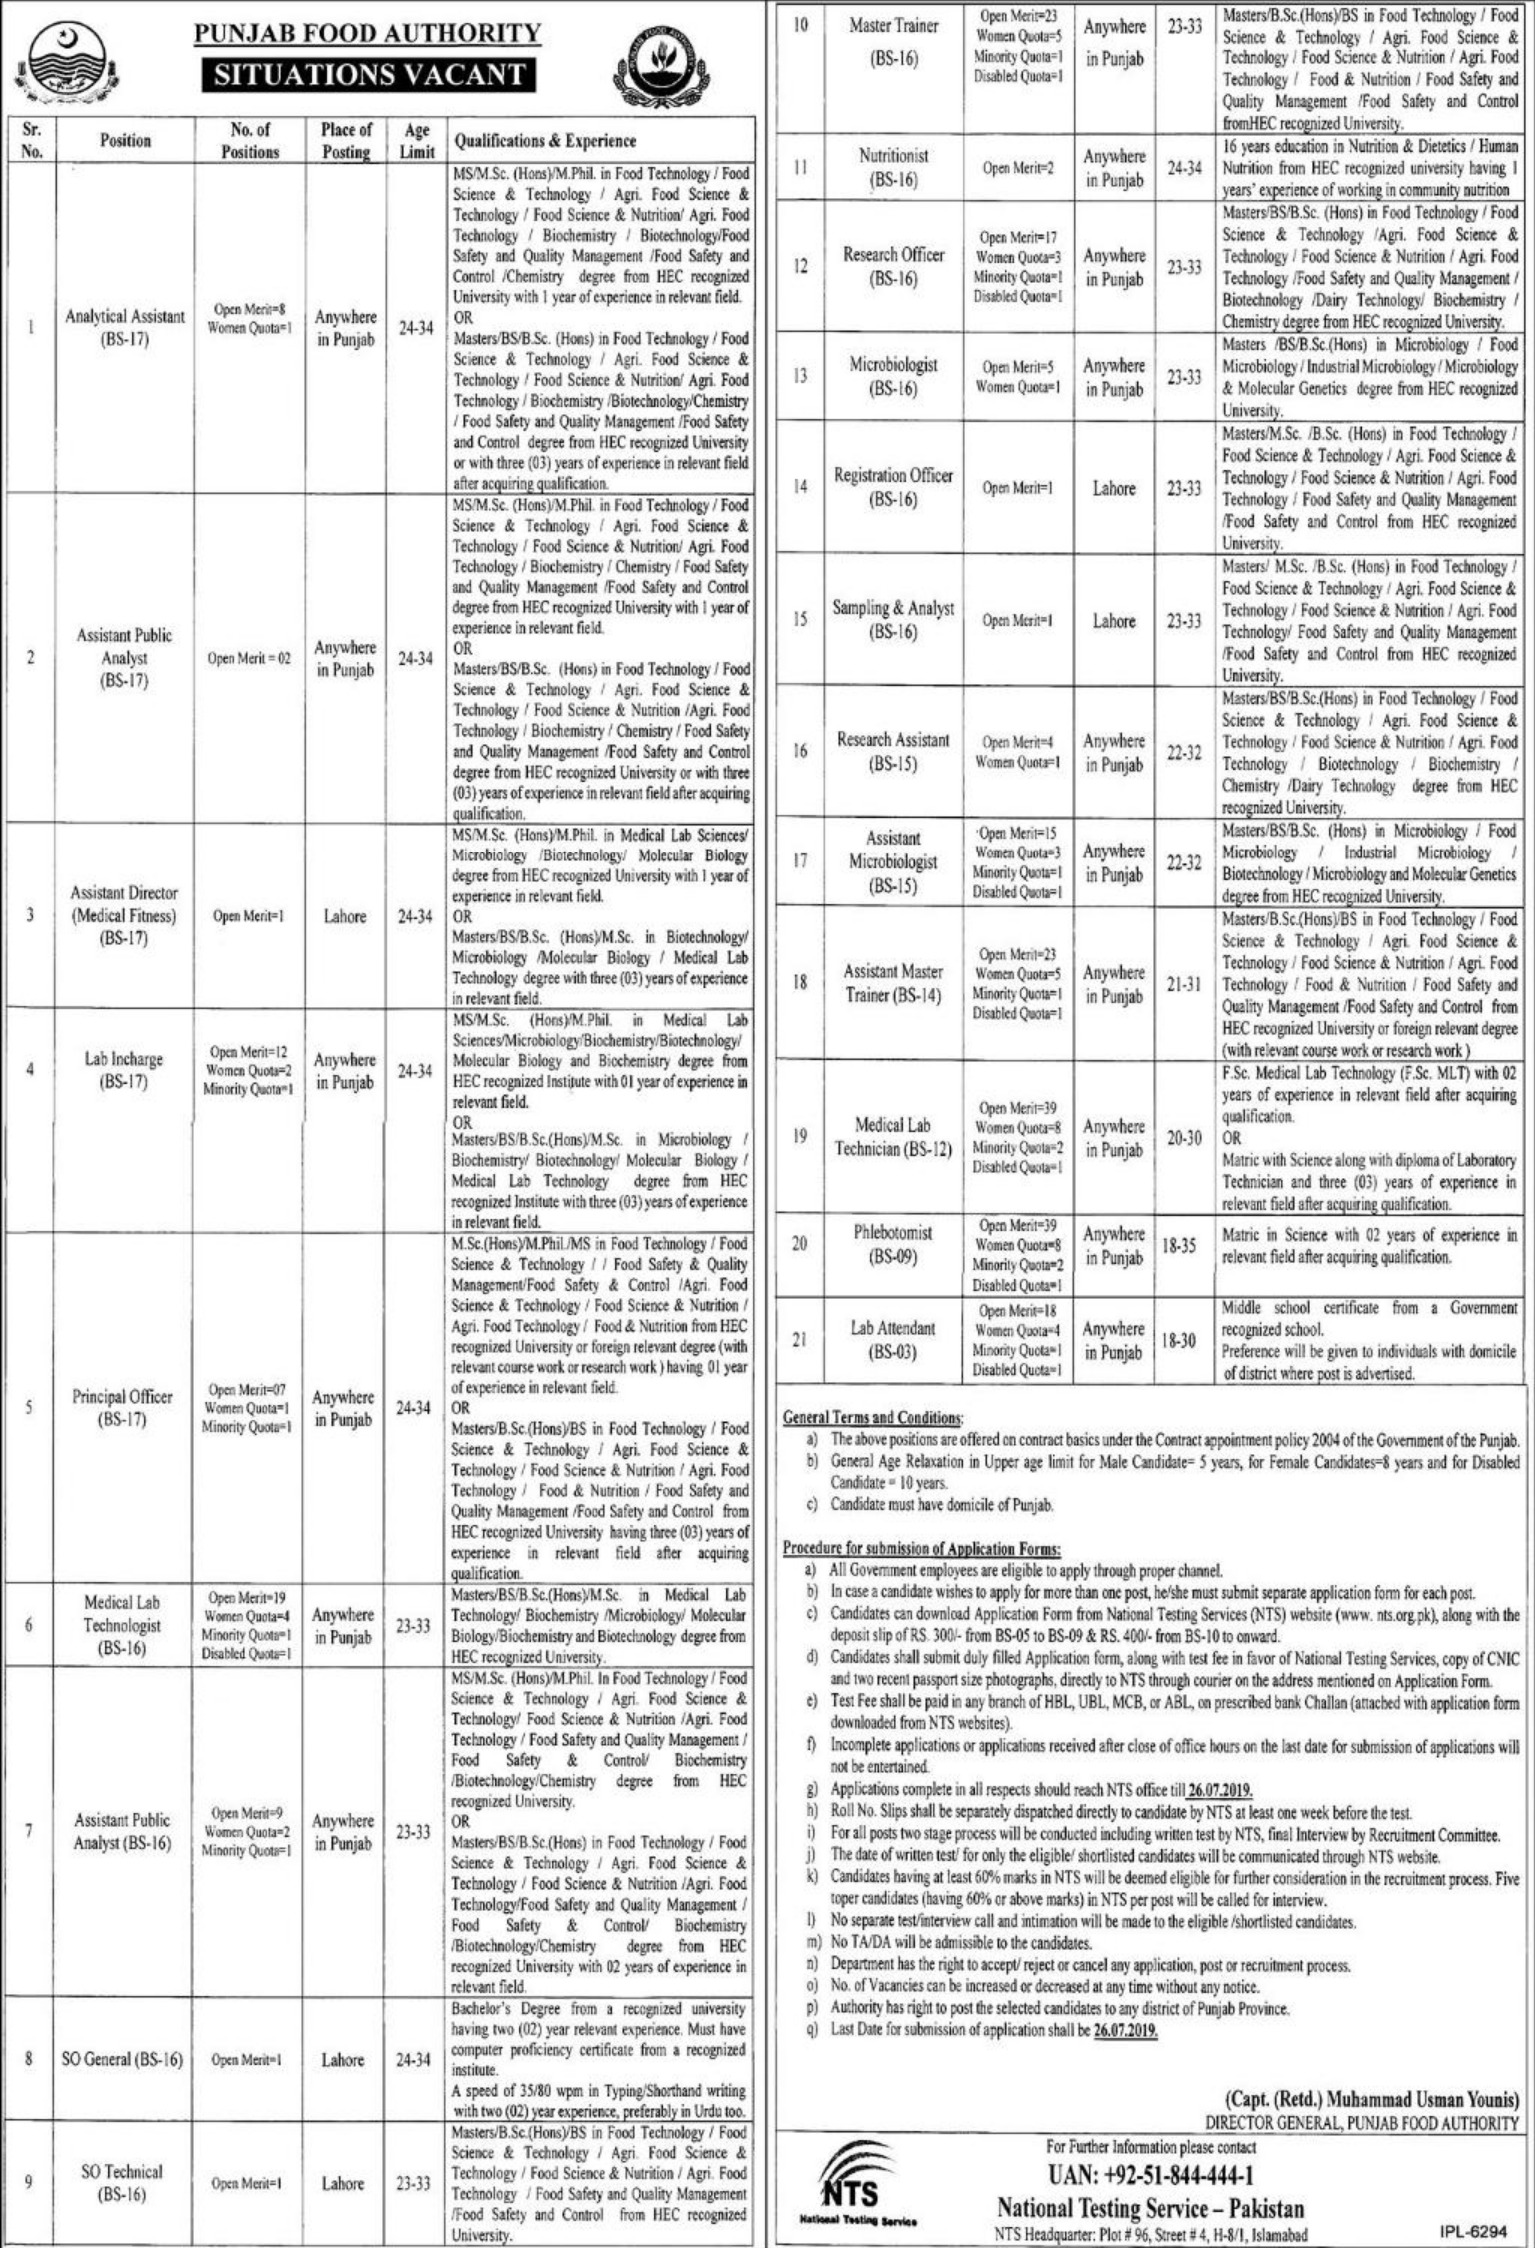 Punjab Food Authority Vacancies